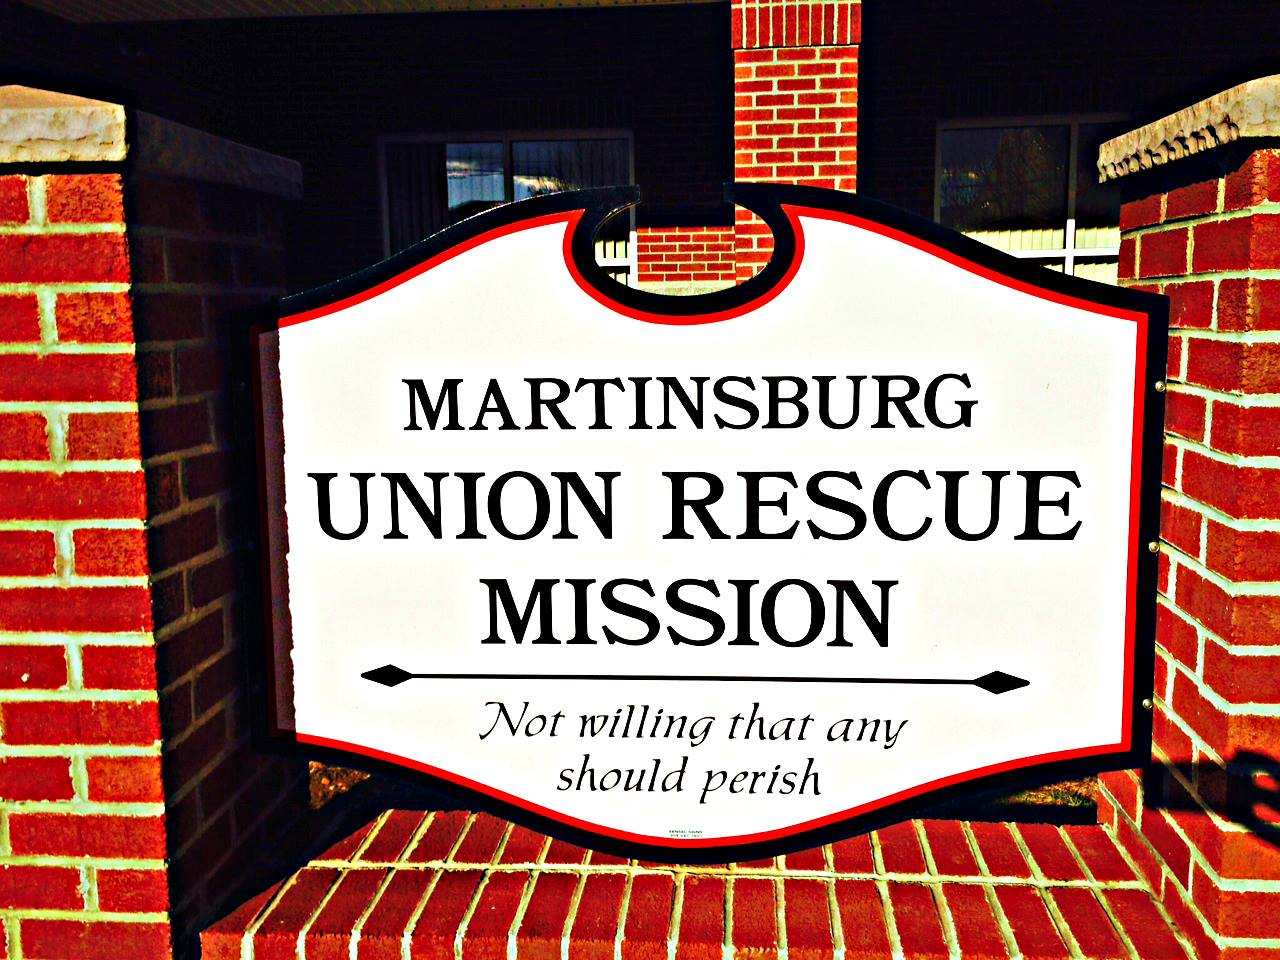 Martinsburg Union Rescue Mission